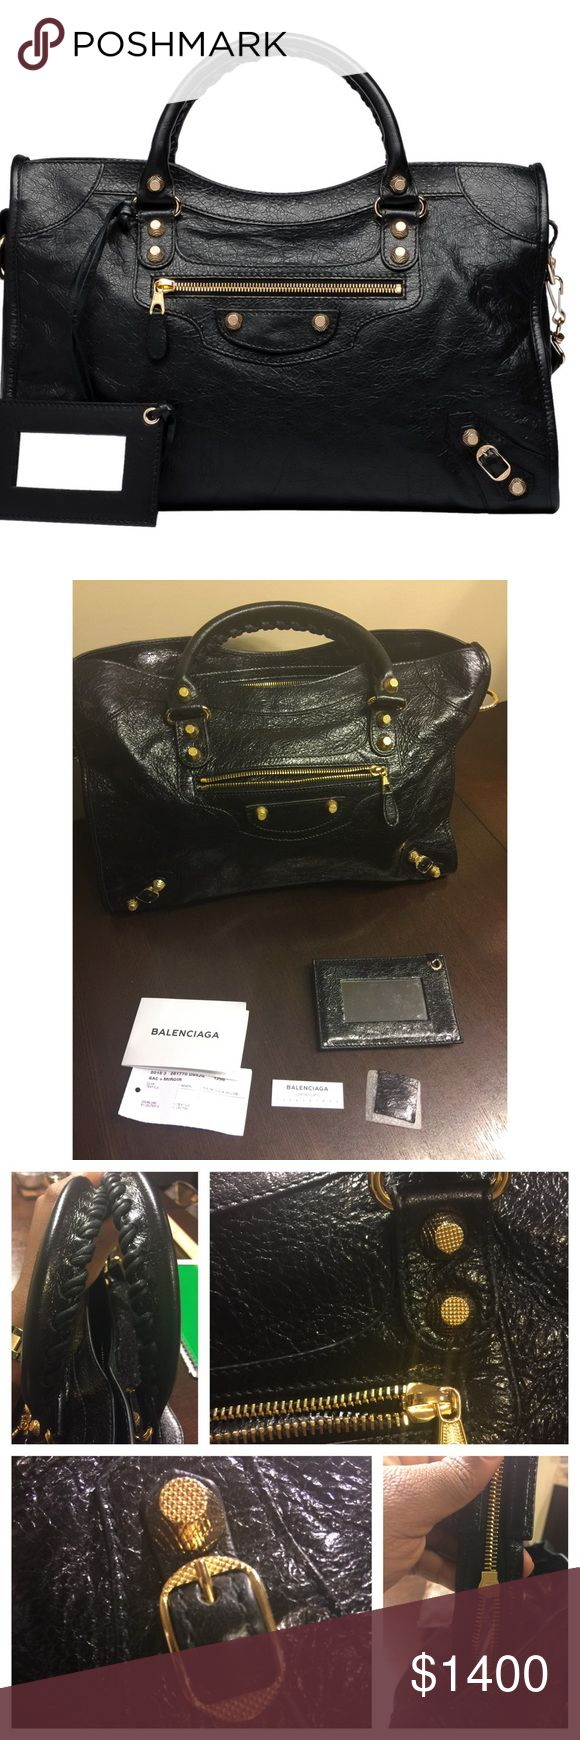 BALENCIAGA GIANT CITY!!! This is a BRAND NEW 12 GOLD BALENCIAGA GIANT CITY in black! Purchased in in July 2015 and never used ! 100% AUTHENTIC                          Leather Soft Lambskin Depth: 5.4 in Width: 14.8 in Height: 9.3 in  Hand Stitched Handles  Removable Shoulder Strap  Zip-top Closure  Gold Metal Finishes  Leather Zipper Zips on  Zipped Front Pocket  Interior Zip Pocket with Balenciaga Embossed Leather Tag  Double Inside Phone Compartment  Mirror with Frame in Leather…